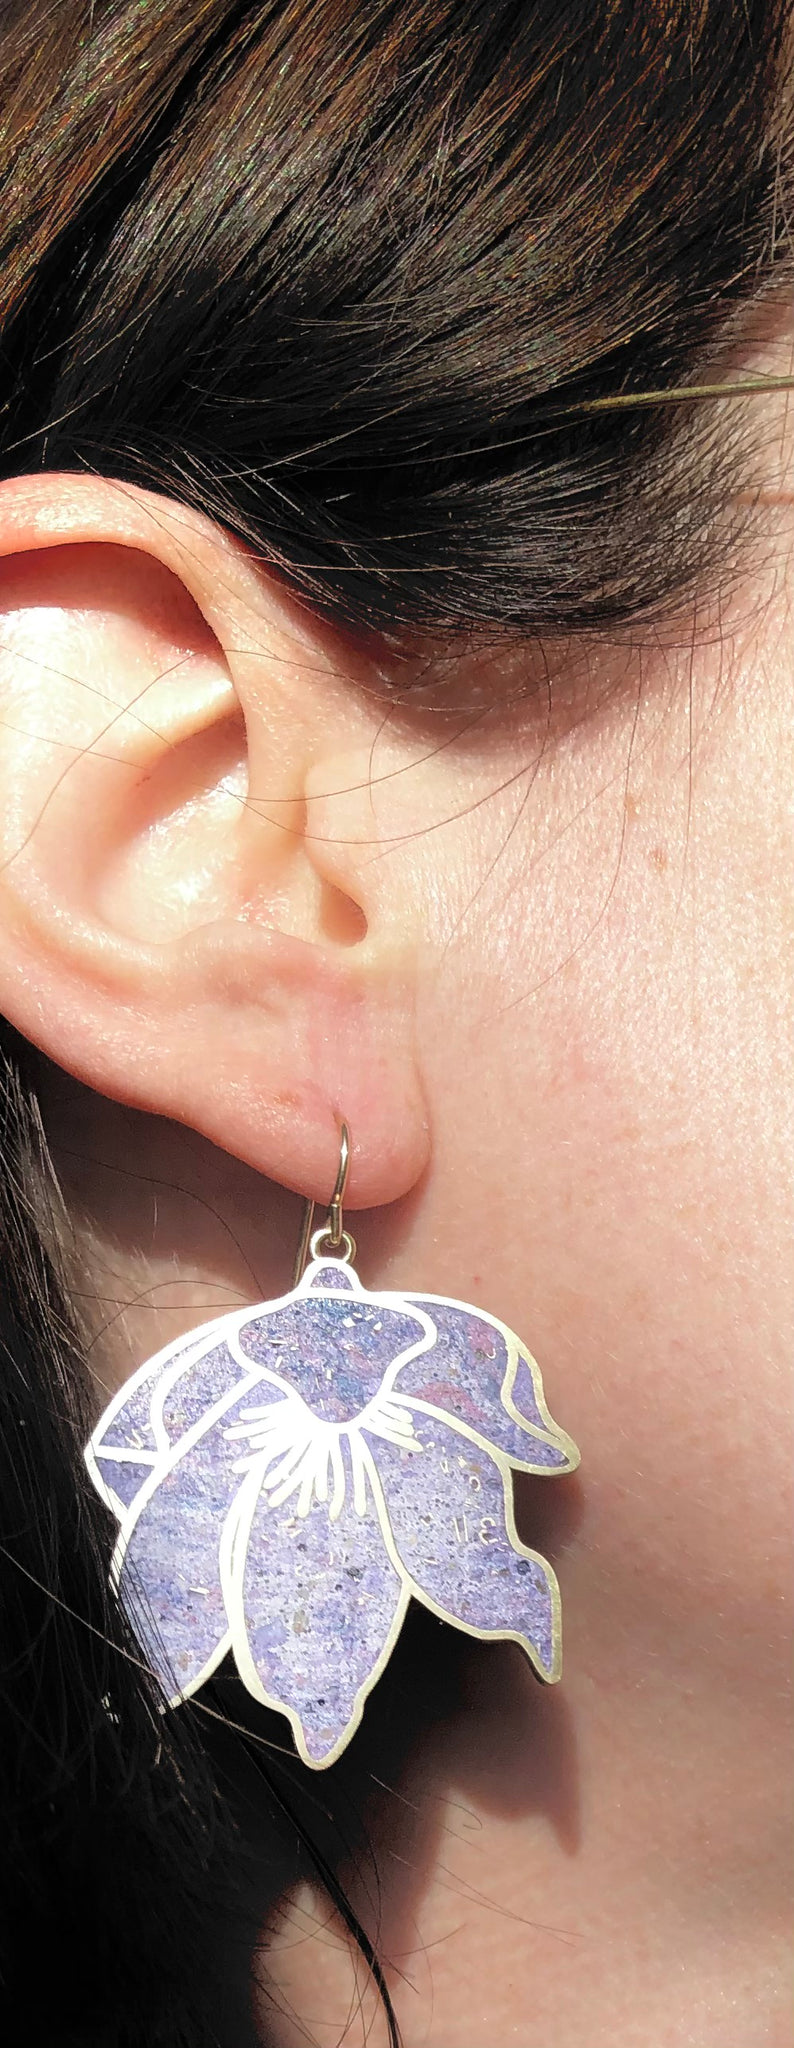 BETON BRUT X MAYERLY PAULENKO COLLAB EARRINGS